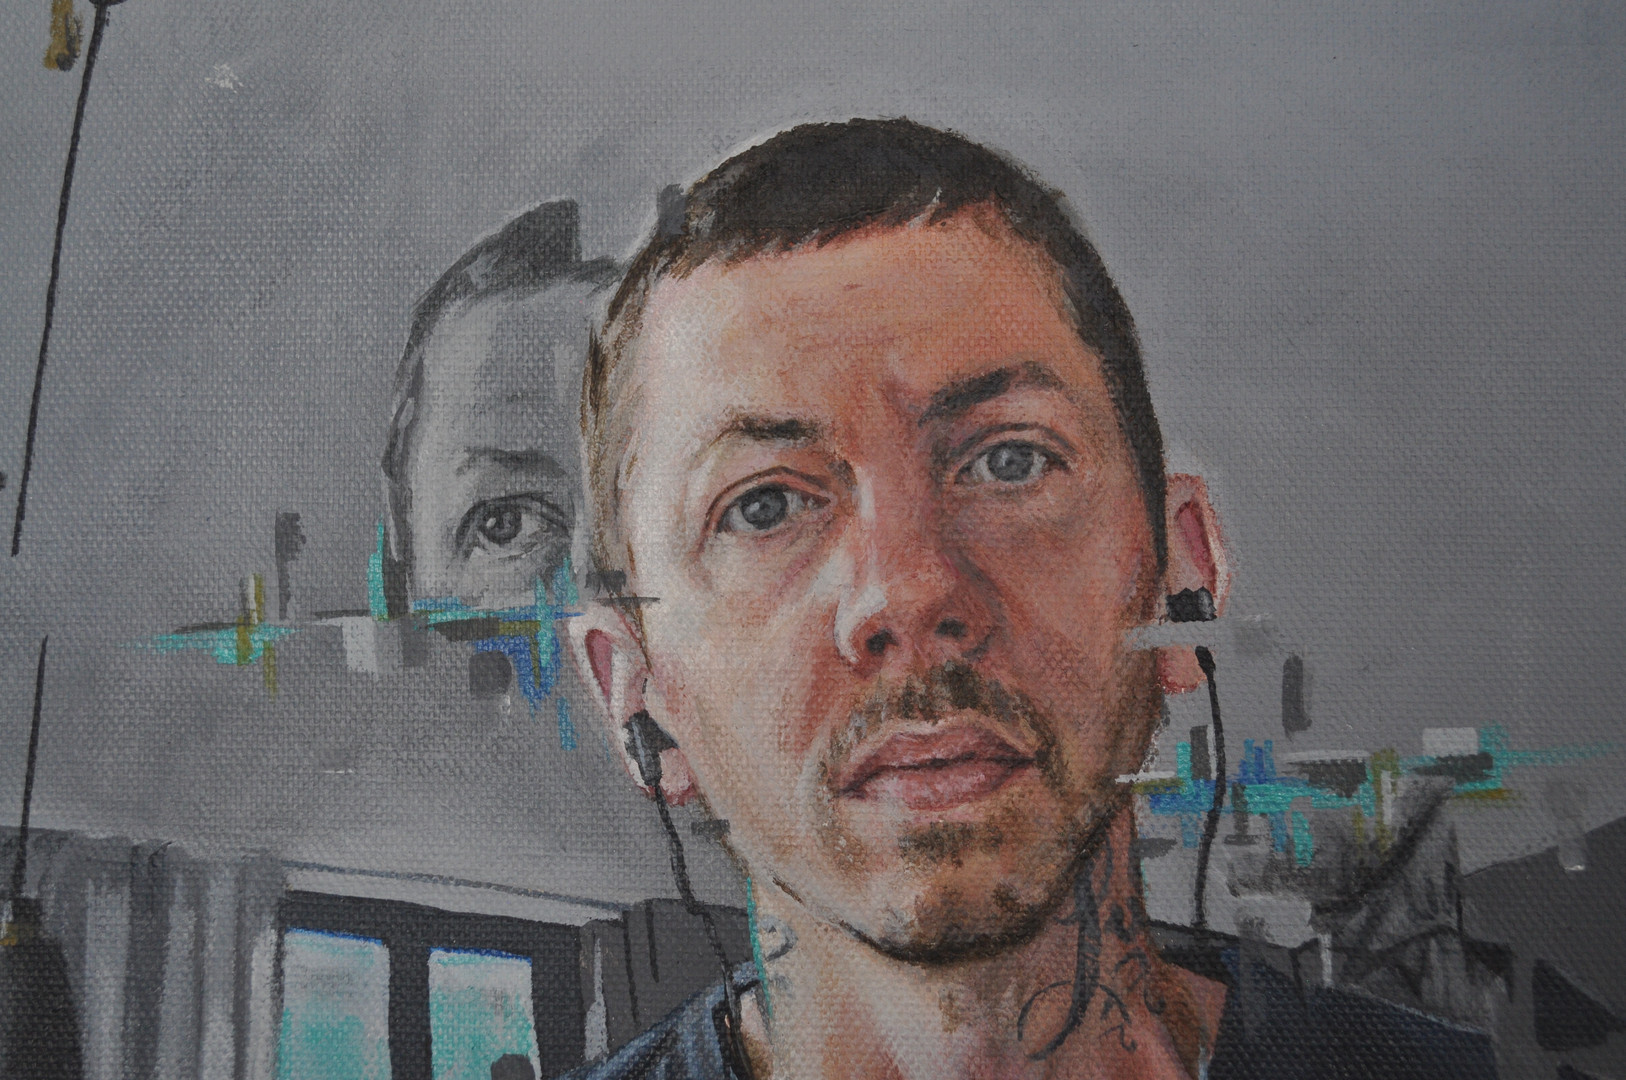 Detail of Professor Green